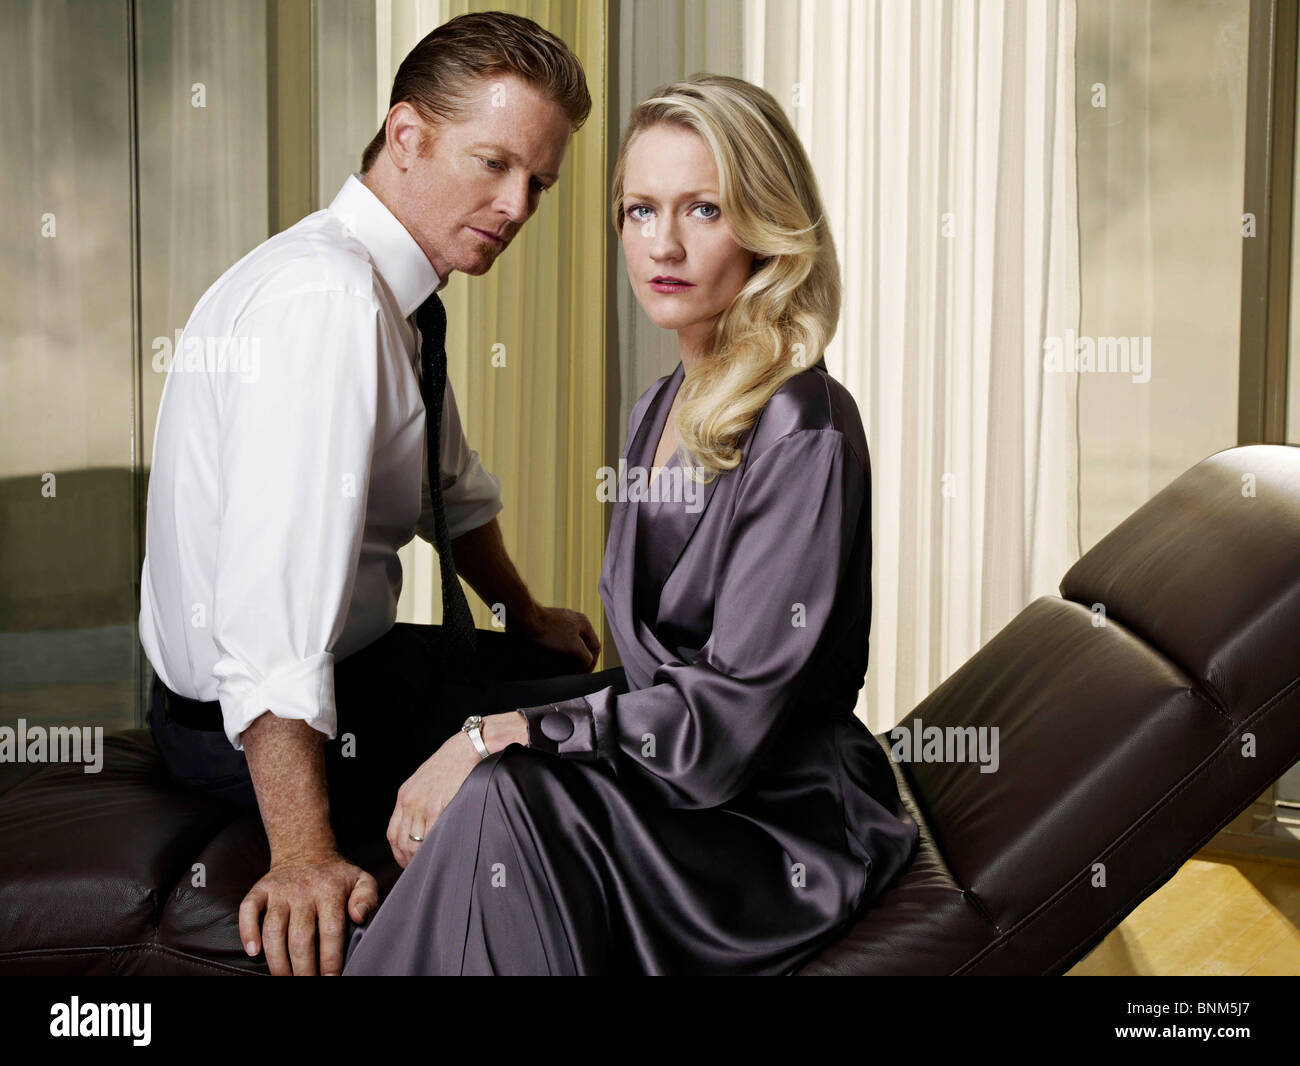 CAPRICA (TV) PAULA MALCOLMSON, ERIC STOLTZ 005 MOVIESTORE COLLECTION LTD - Stock Image